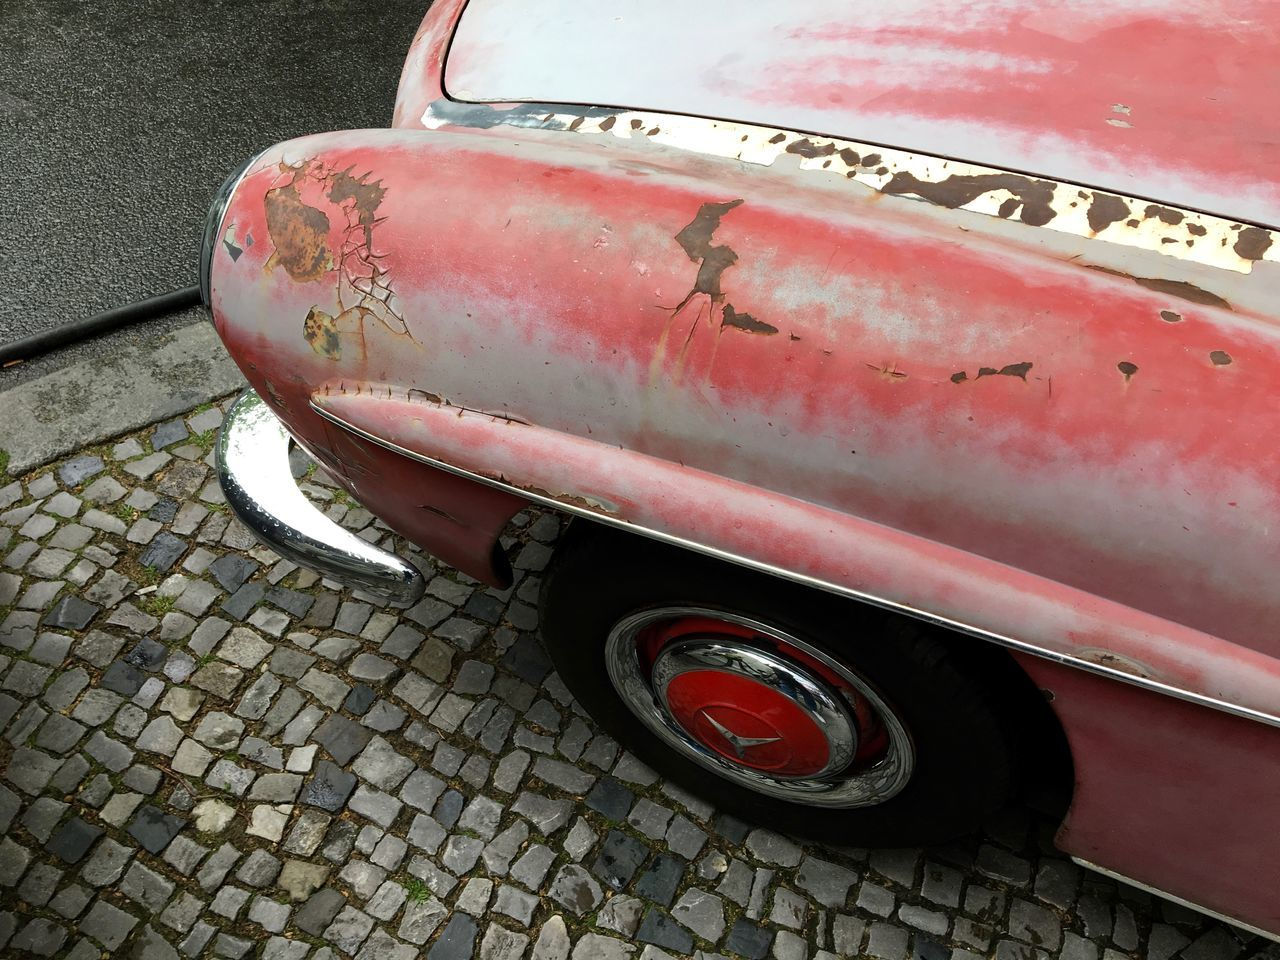 car day Car Cars Close-up Hidden Treasure Lifestyle Mercedes Mercedes-Benz Old Car Oldtimer Parking Red Rusty Streetphotography Vintage